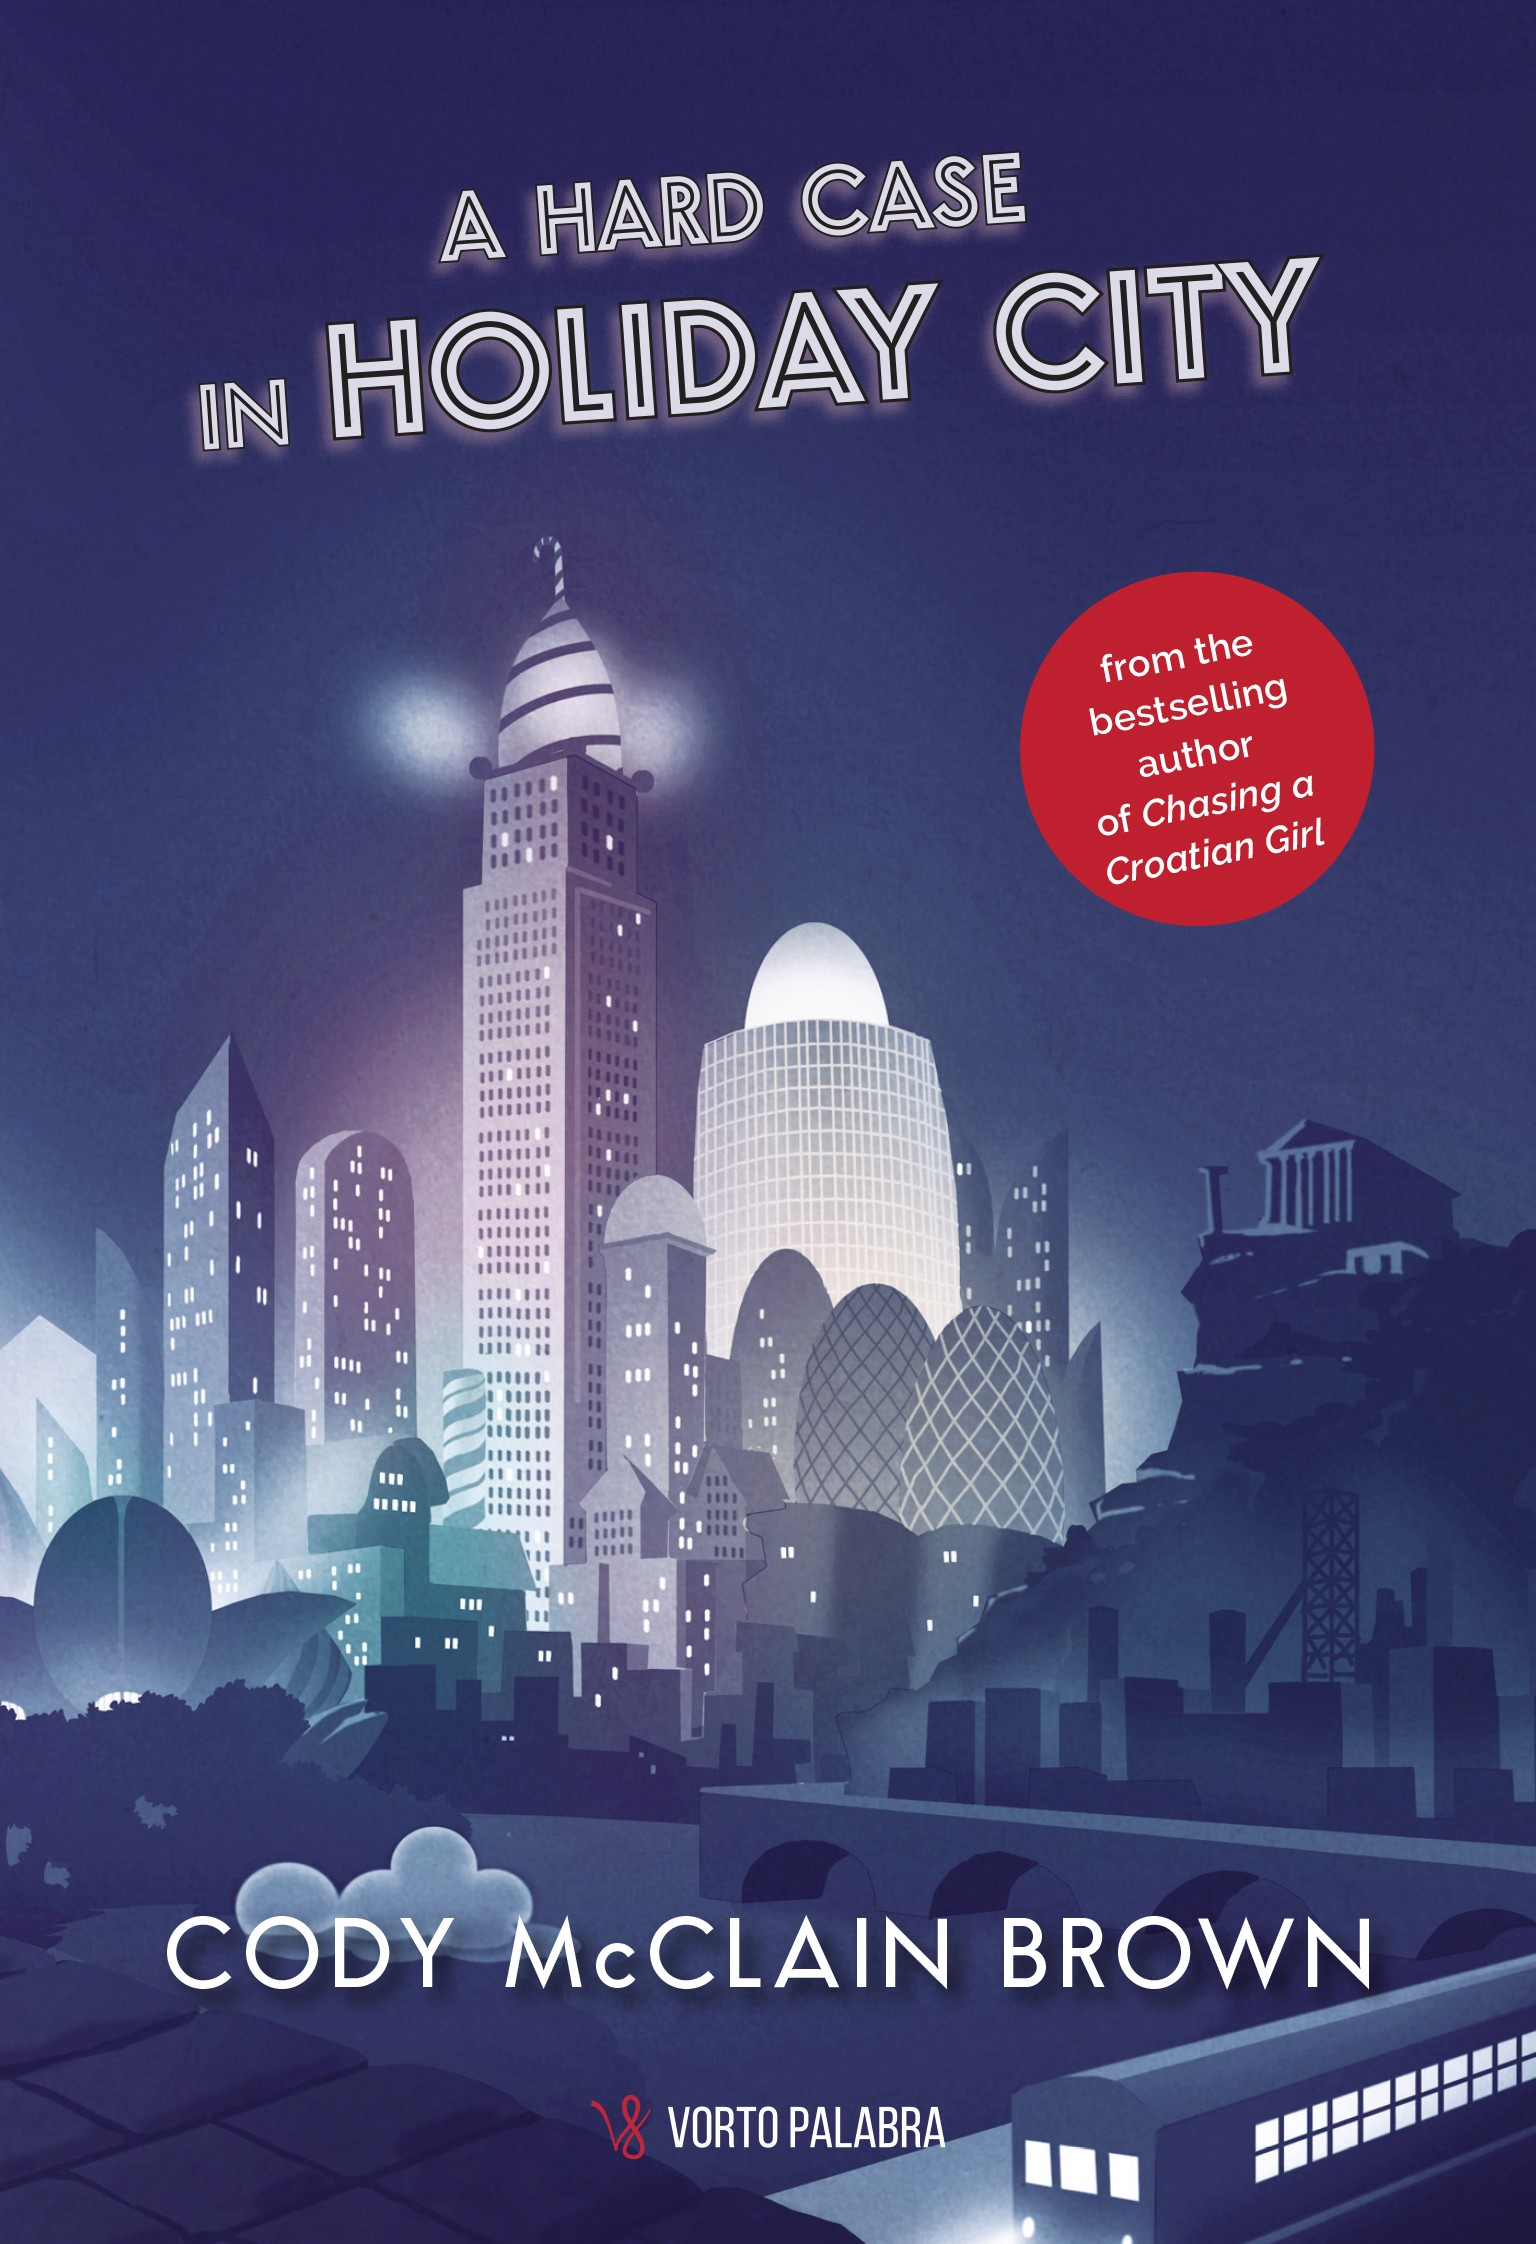 A hard case in holiday city